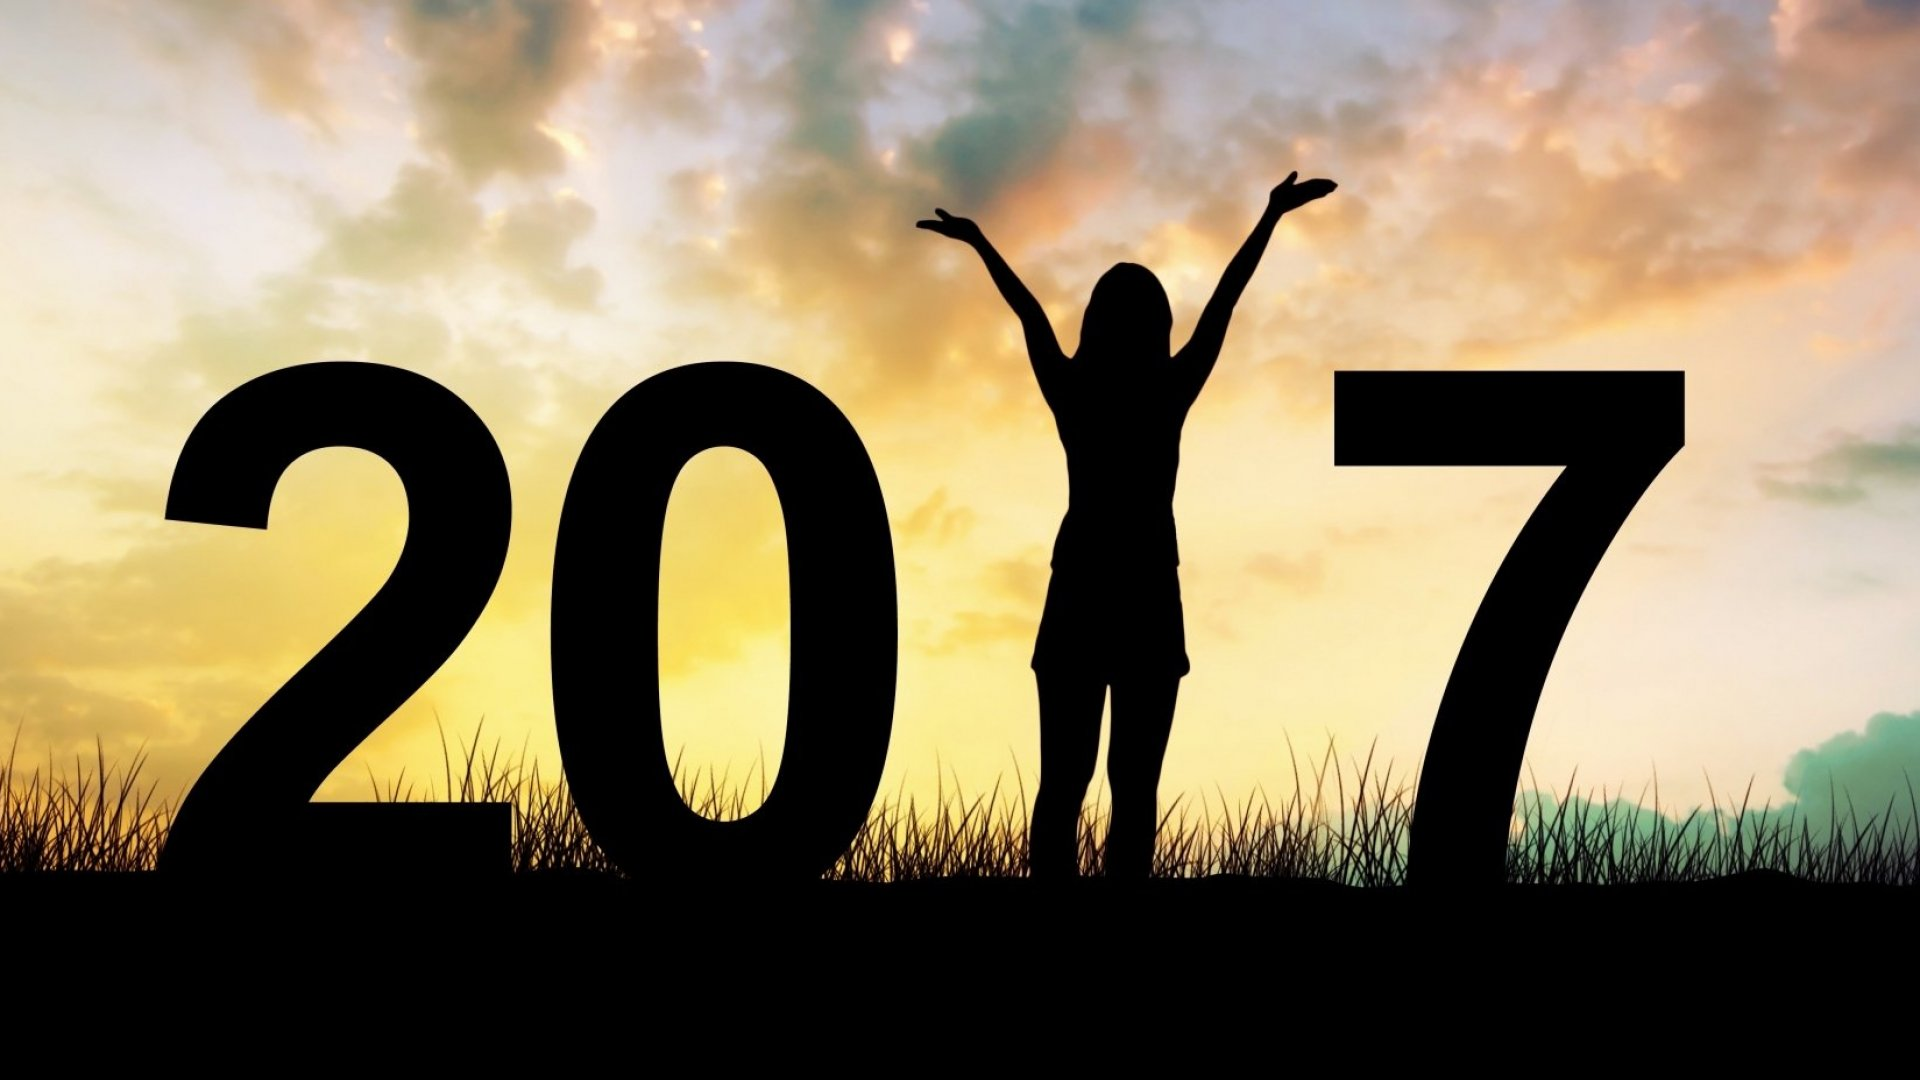 4 Reasons 2017 Will Be a Good Year for Your Business